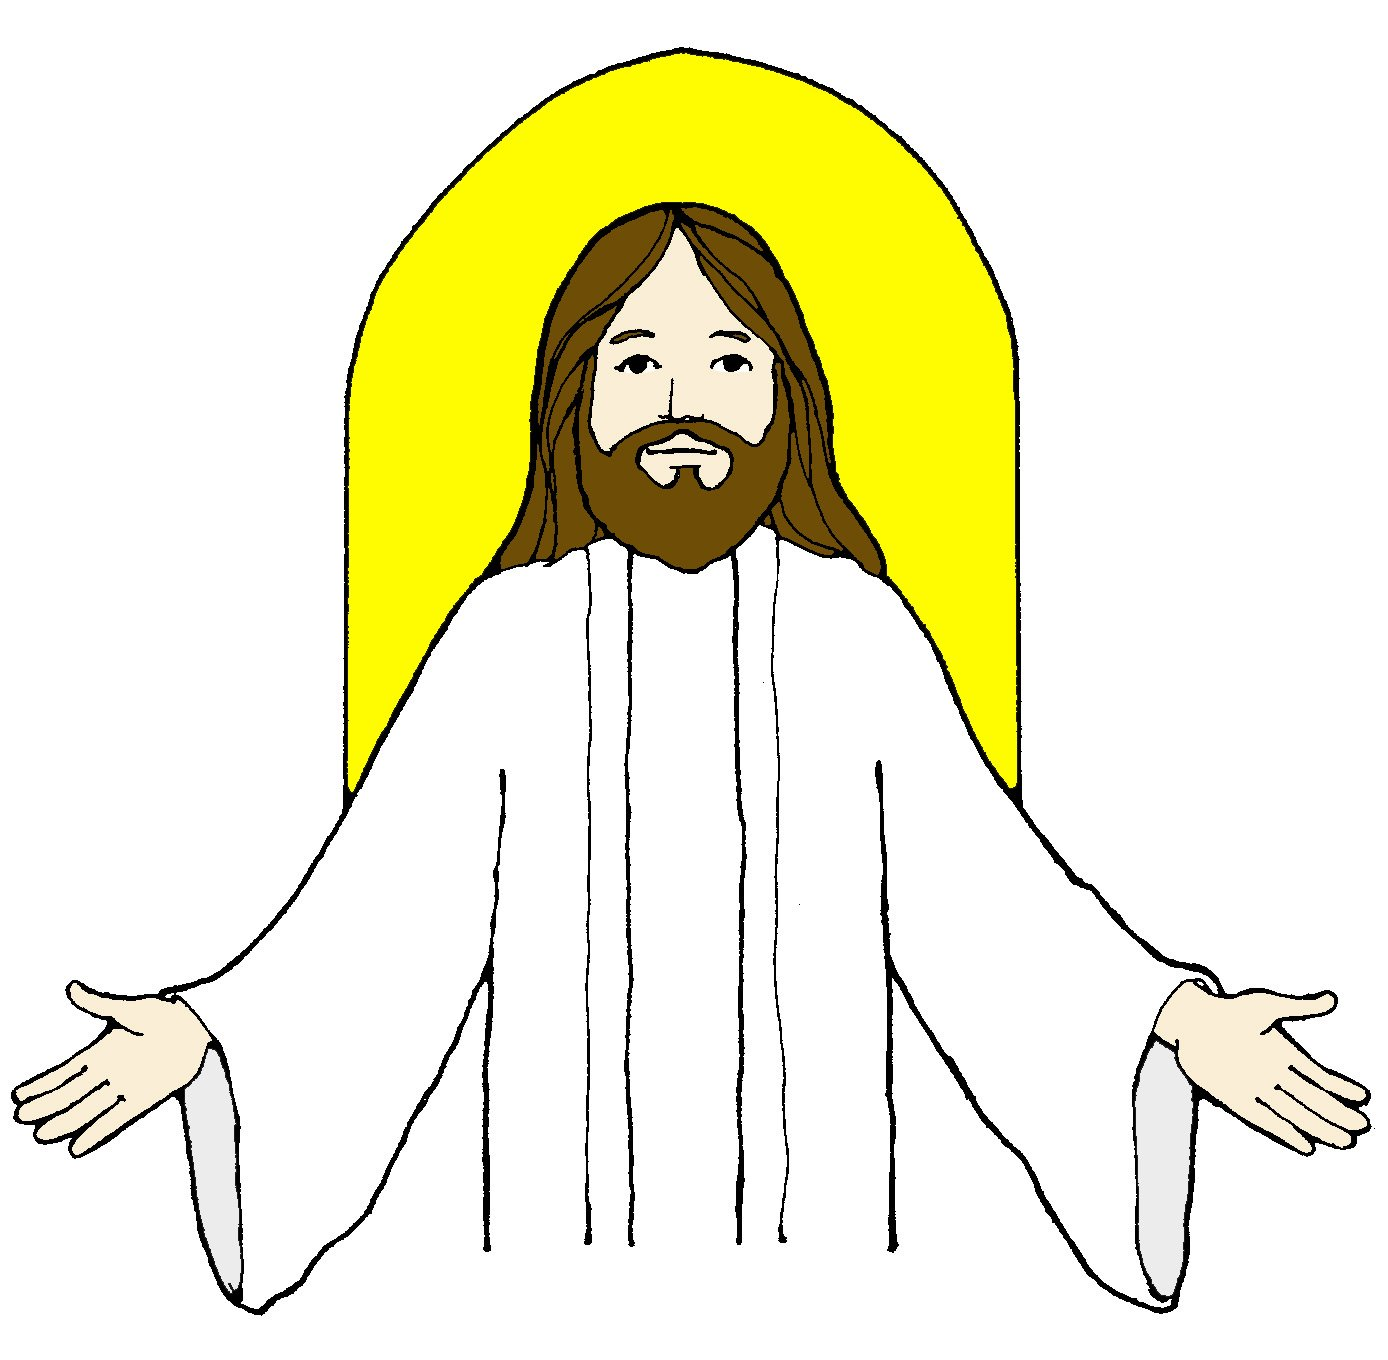 jesus clip art black and white clipart panda free clipart images rh clipartpanda com clipart of jesus and his disciples clipart of jesus christ